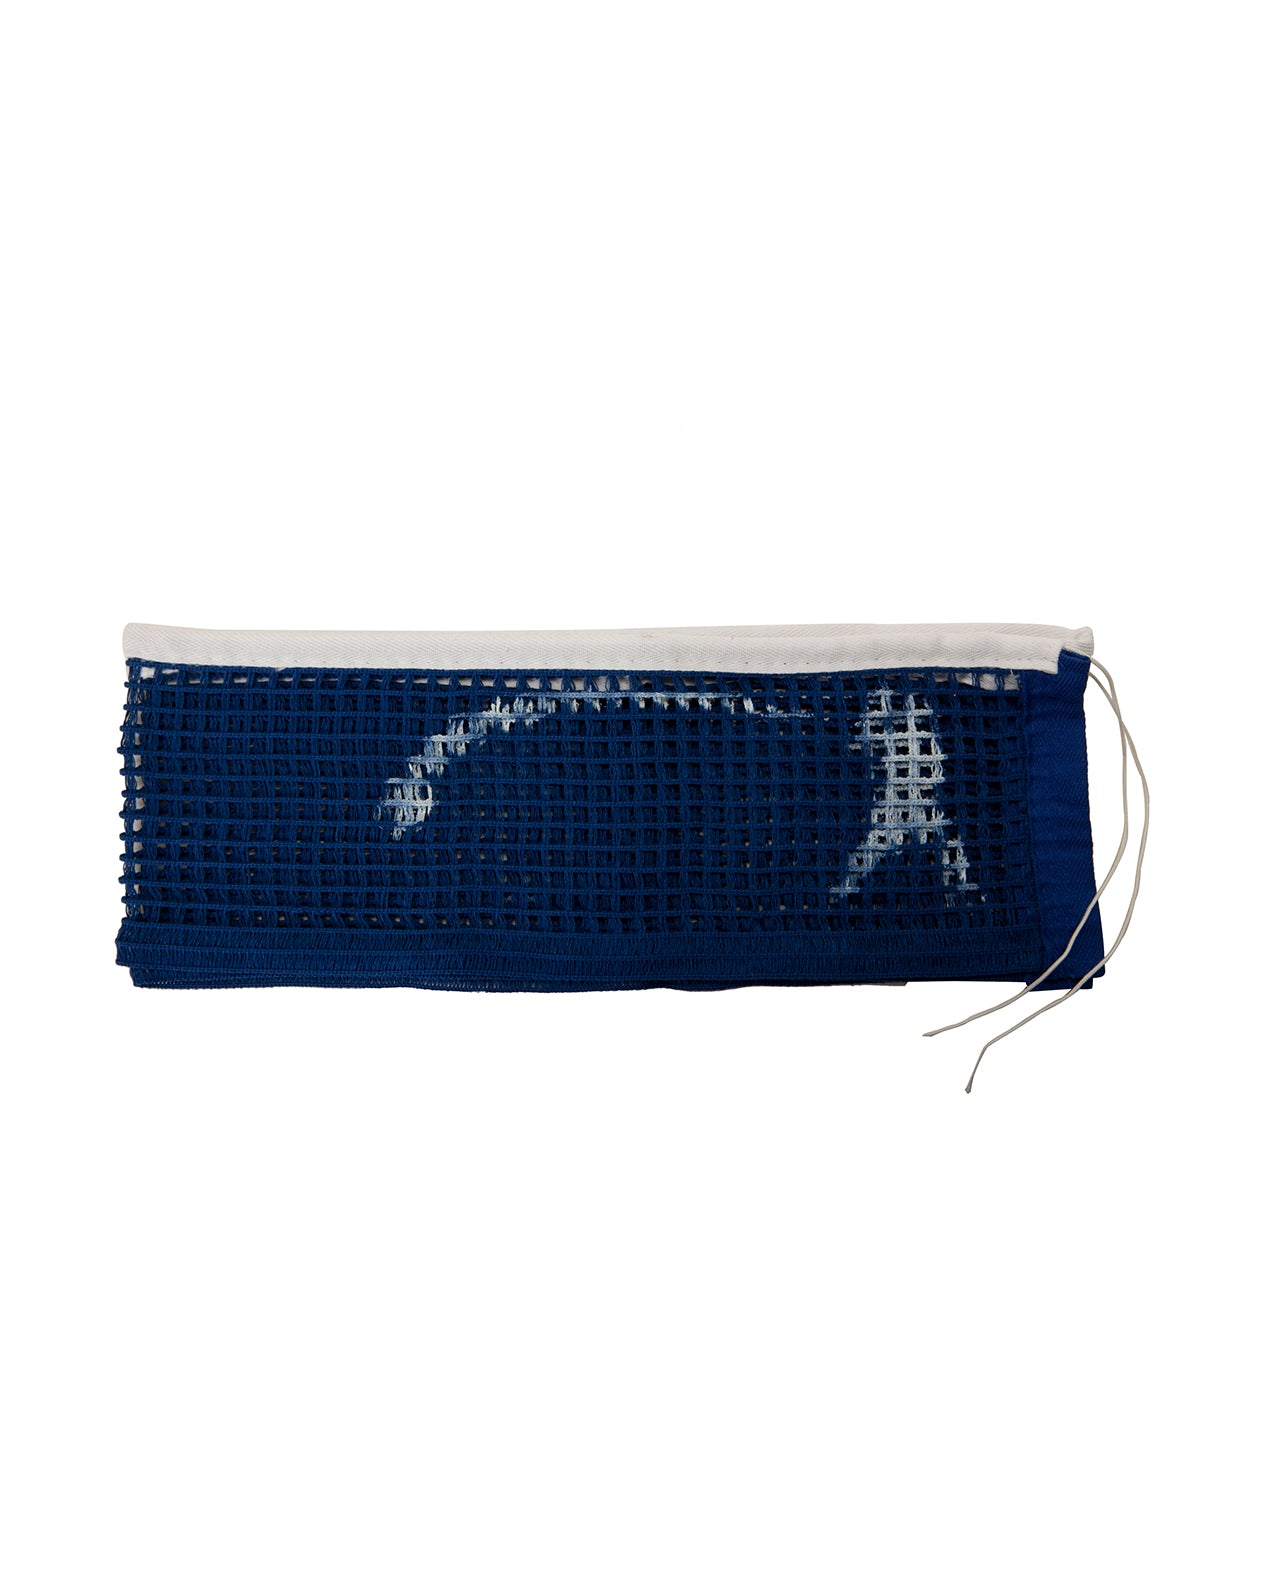 Killerspin Ping Pong Table Net Outdoor Replacements Blue